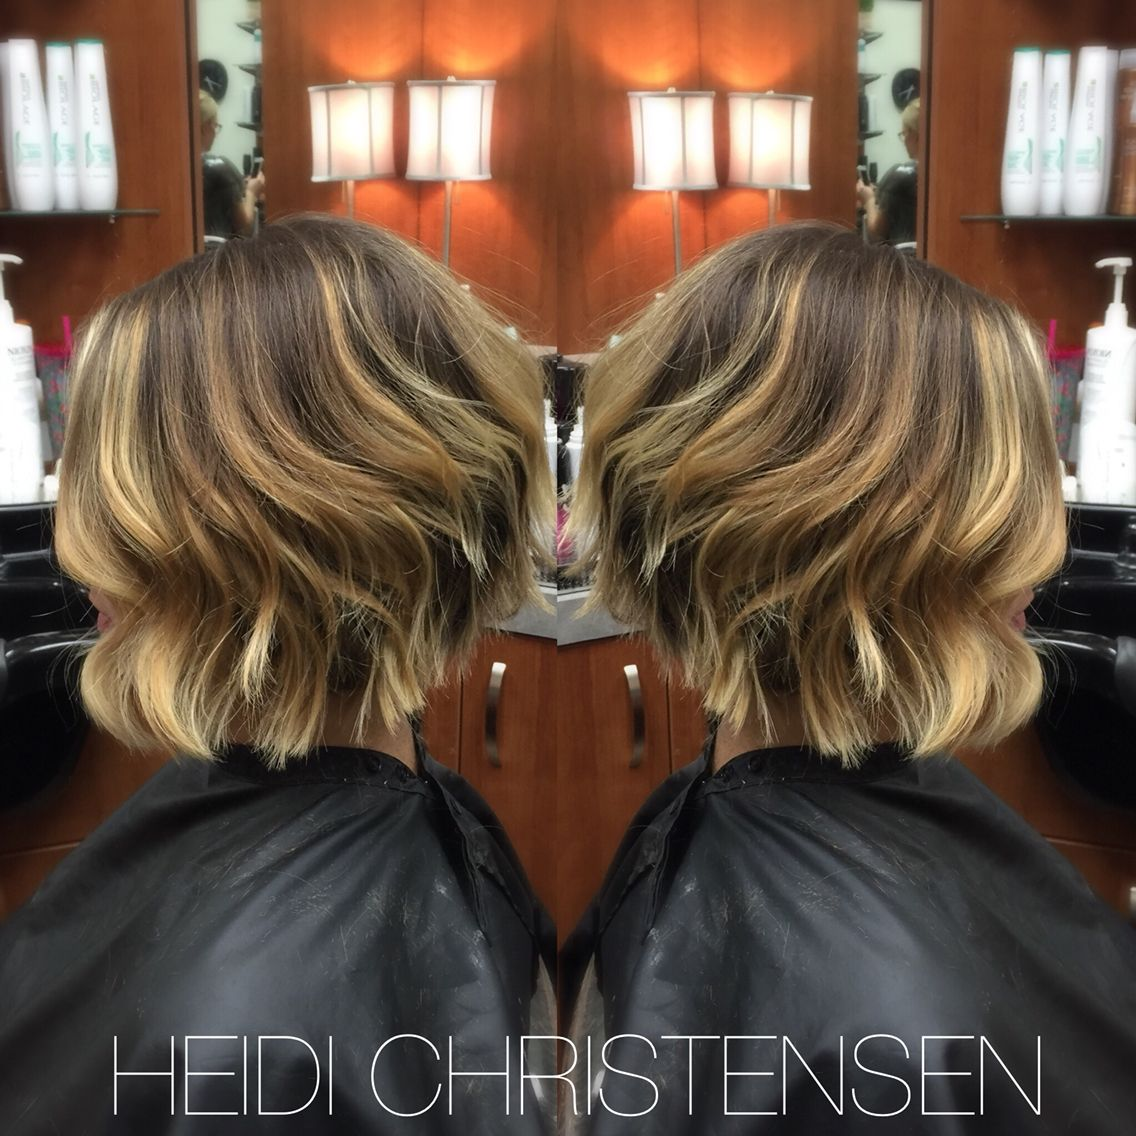 Textured short messy hair with flat iron curls Hair